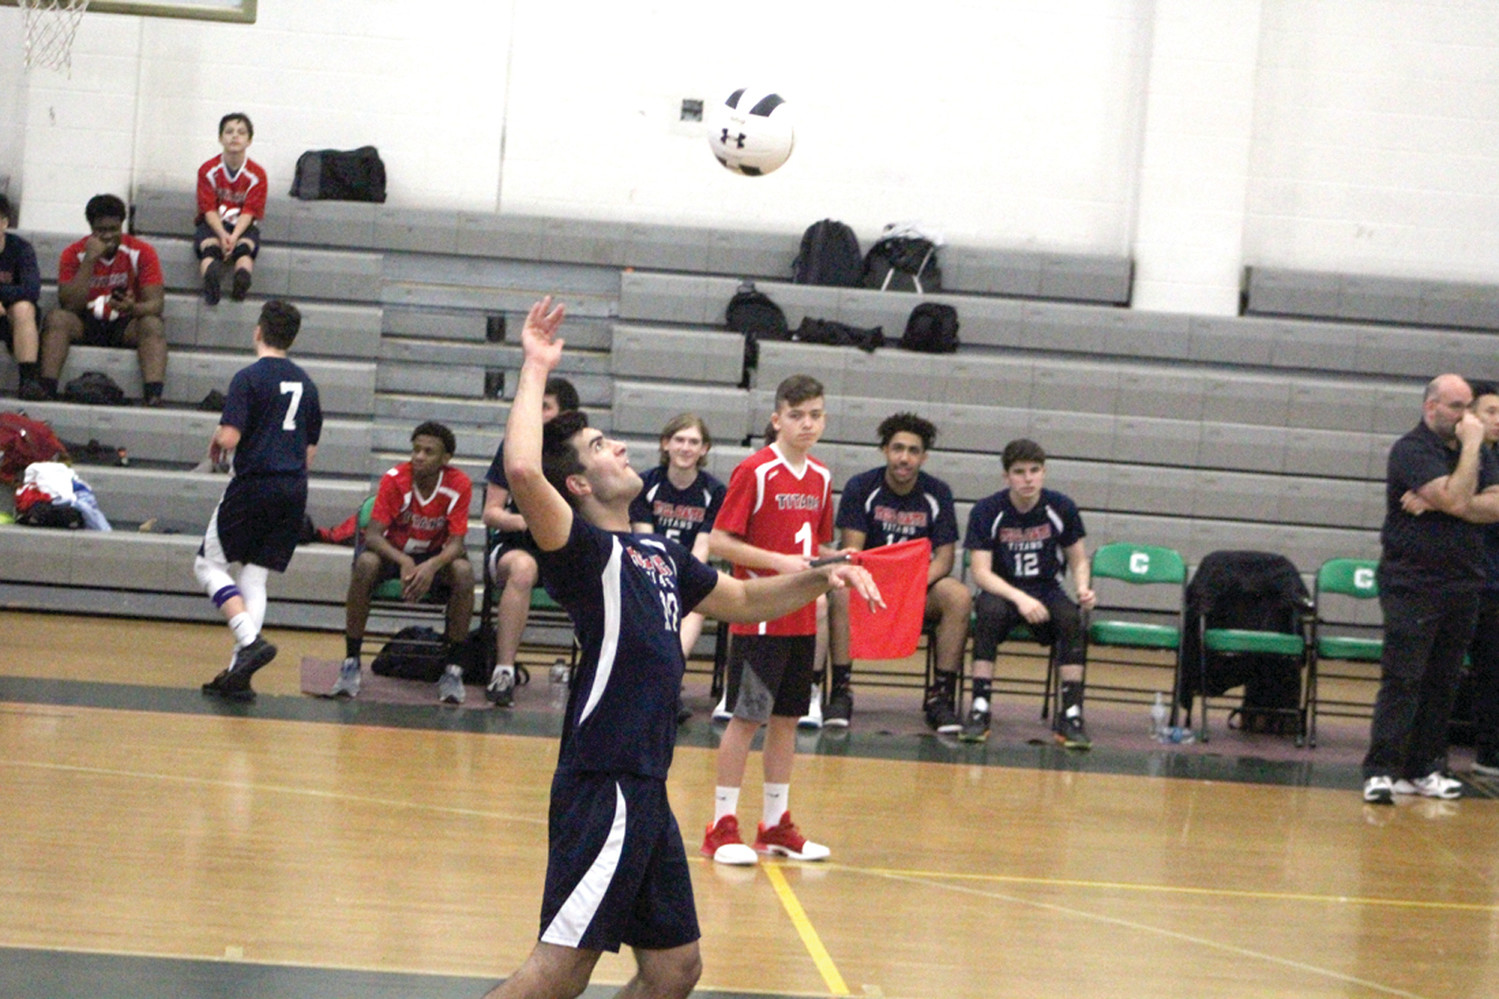 Max Laiter serves the ball for Toll Gate.